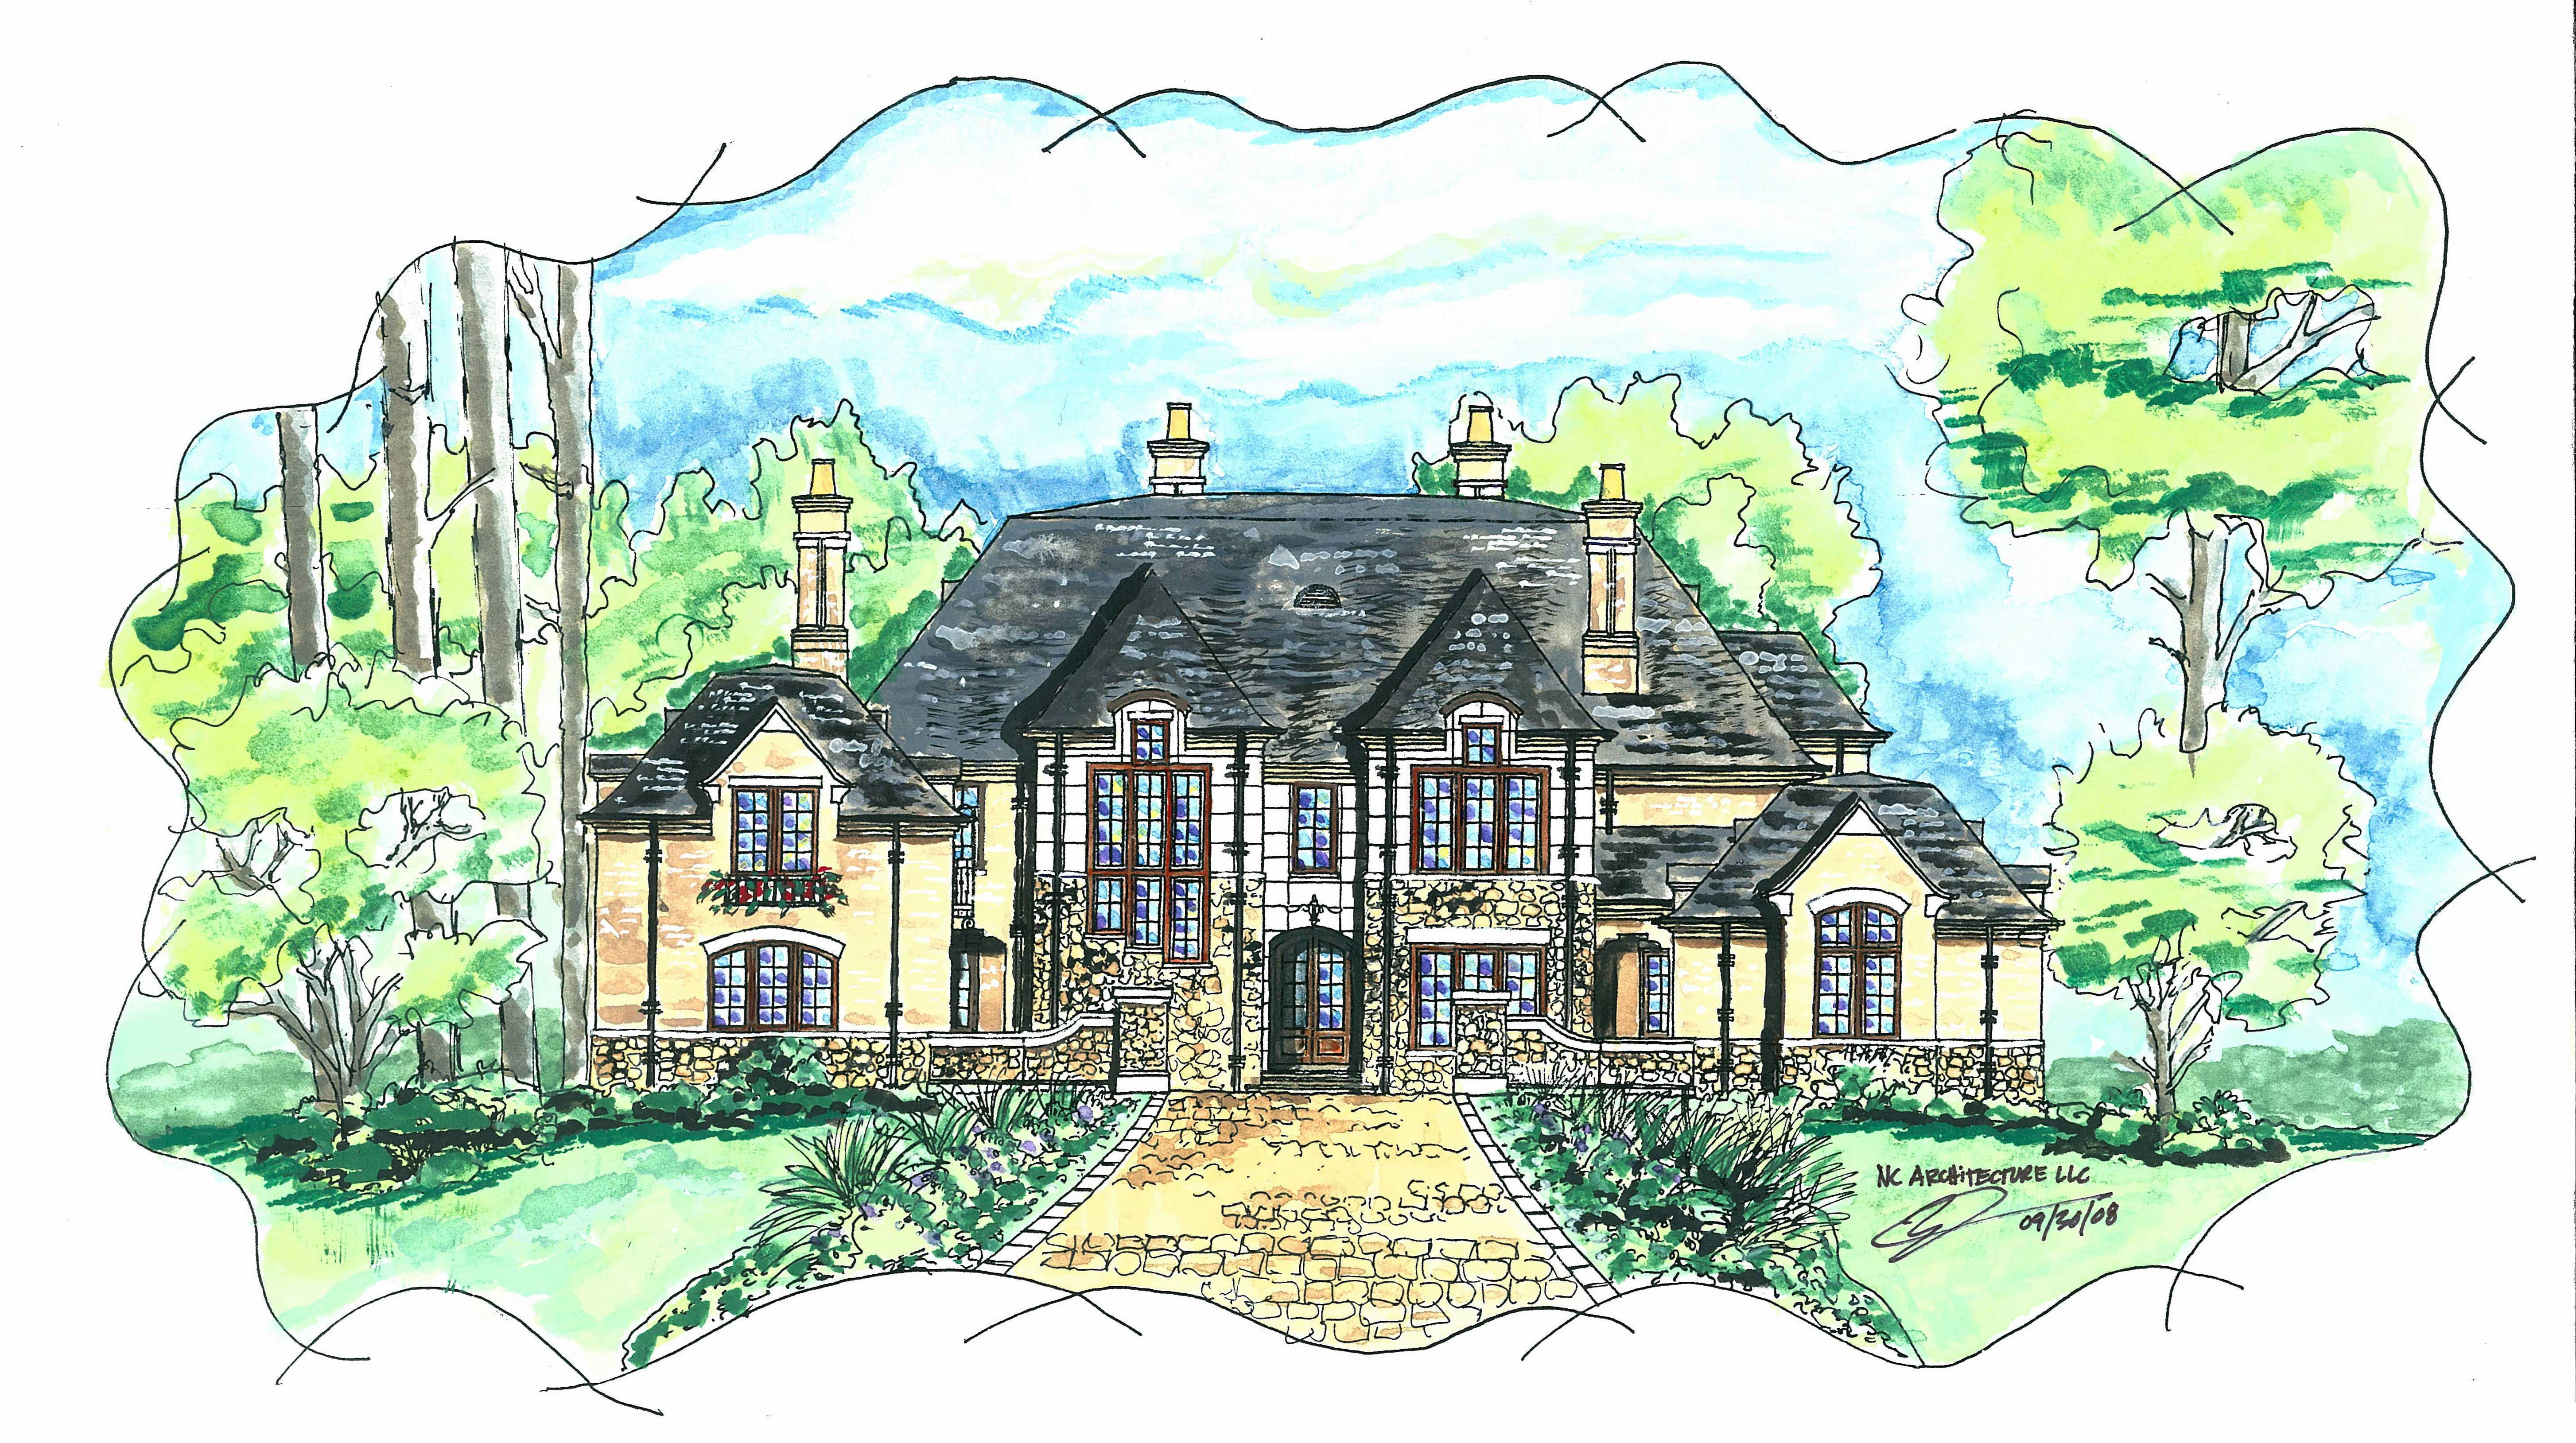 Luxury Home Plans West Paces Home Design - Luxurious home plans